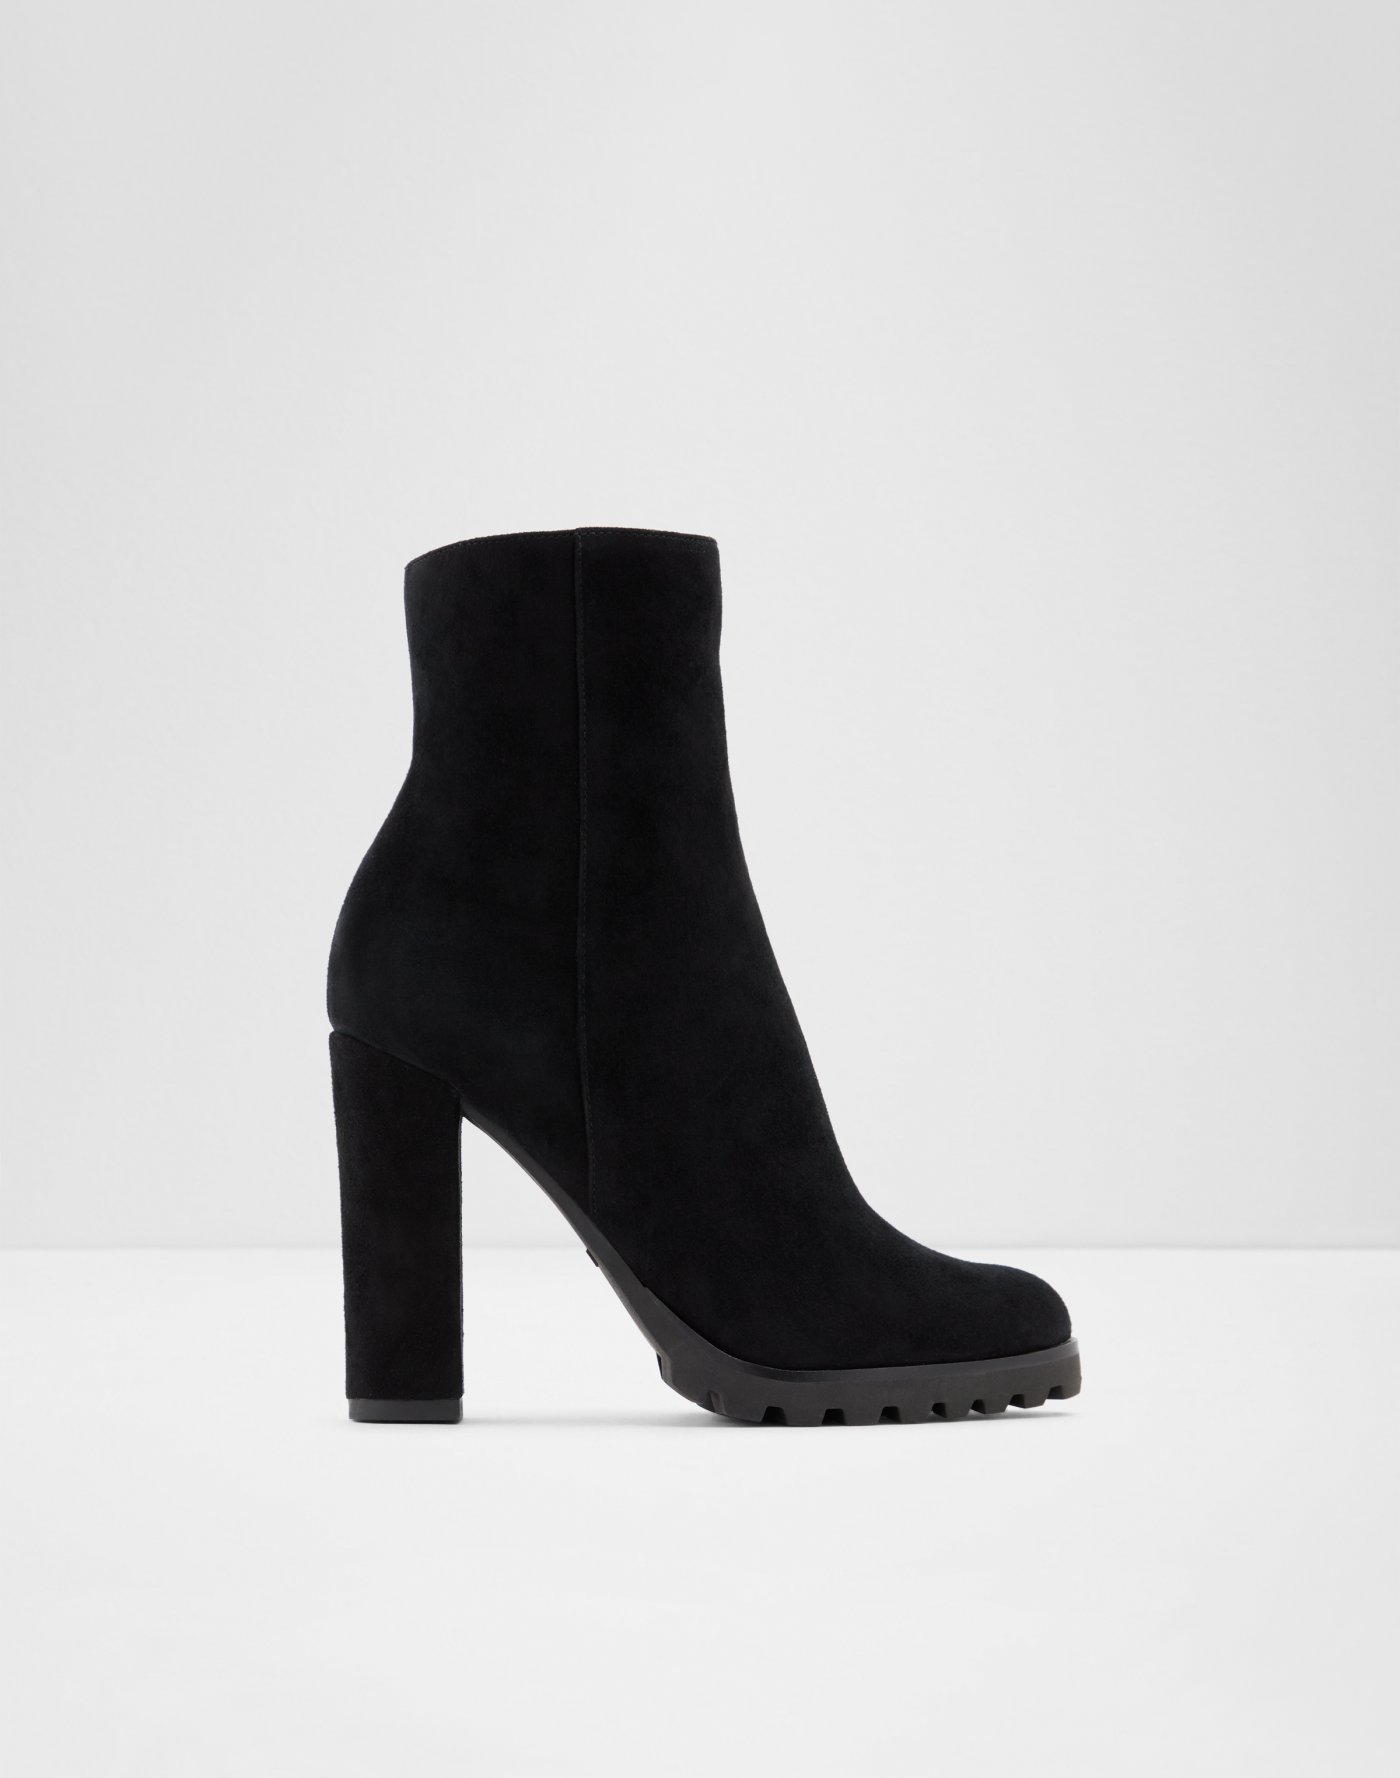 c0a691694 Ankle boots | ALDO Canada